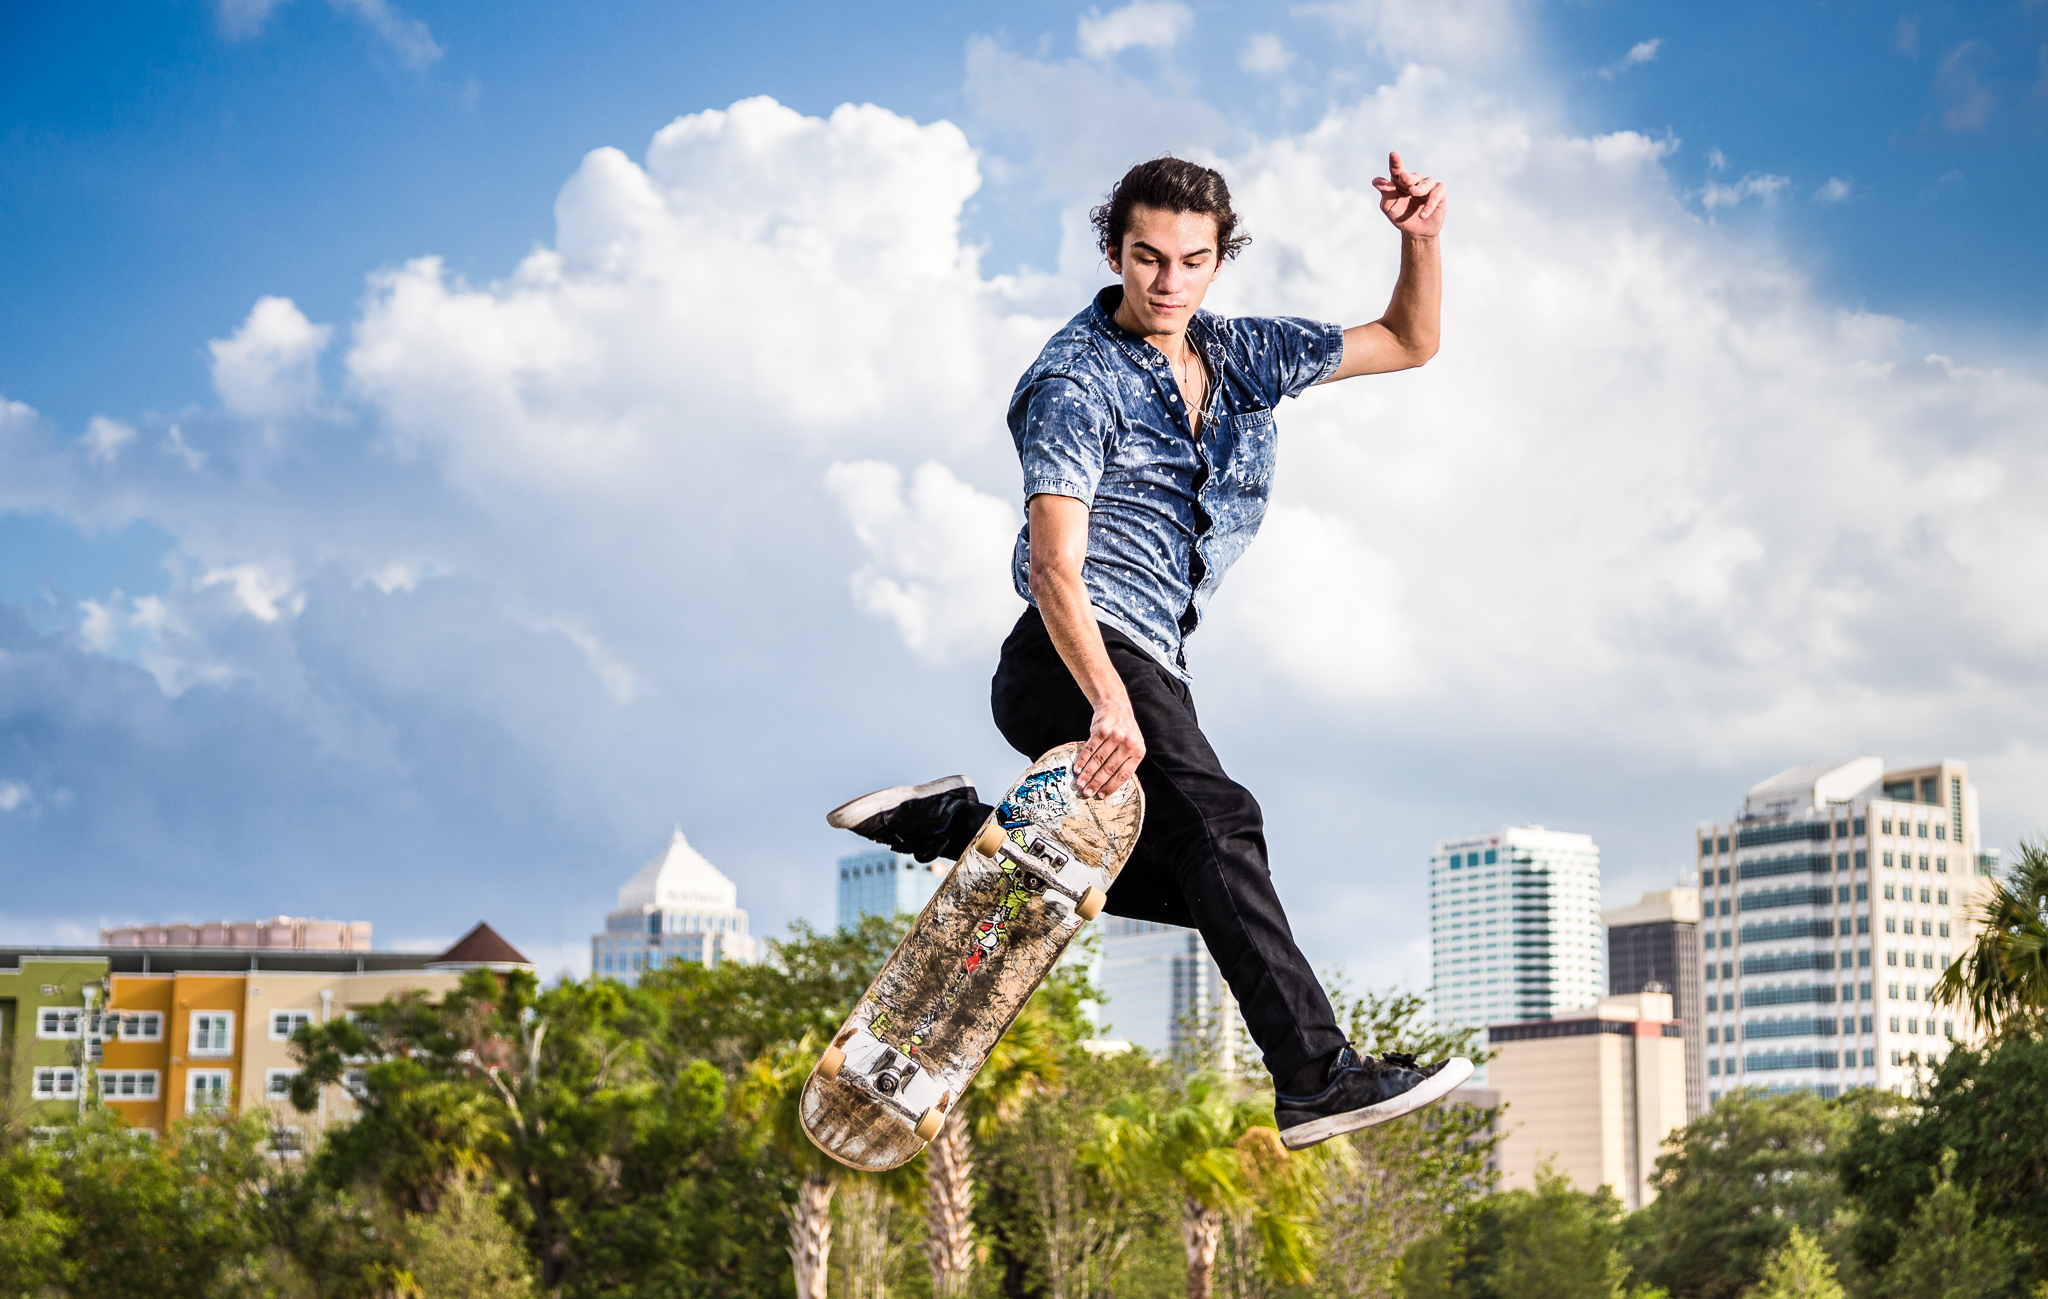 Skateboard Trick at Bro Bowl Tampa by Austin Robles